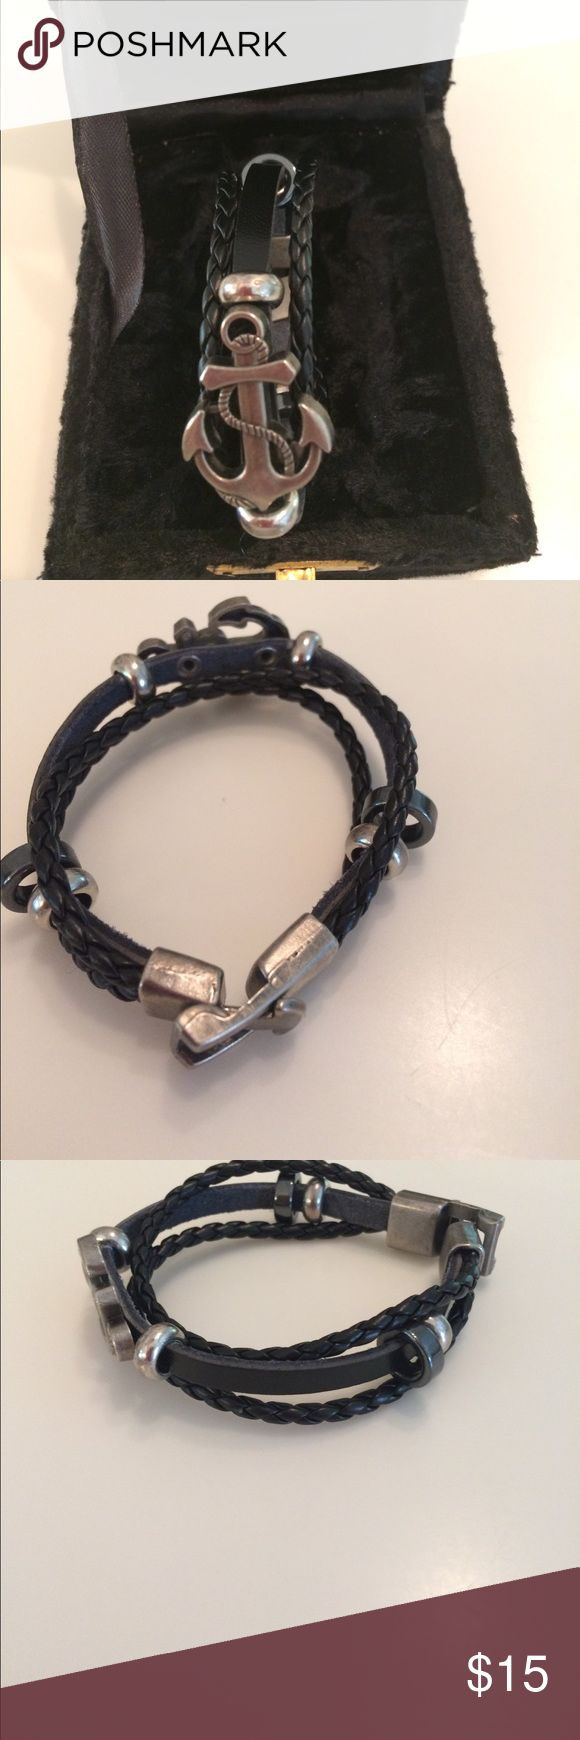 Men's Nautical Bracelet. Black ropes with pewter anchor and closure. Accessories Watches